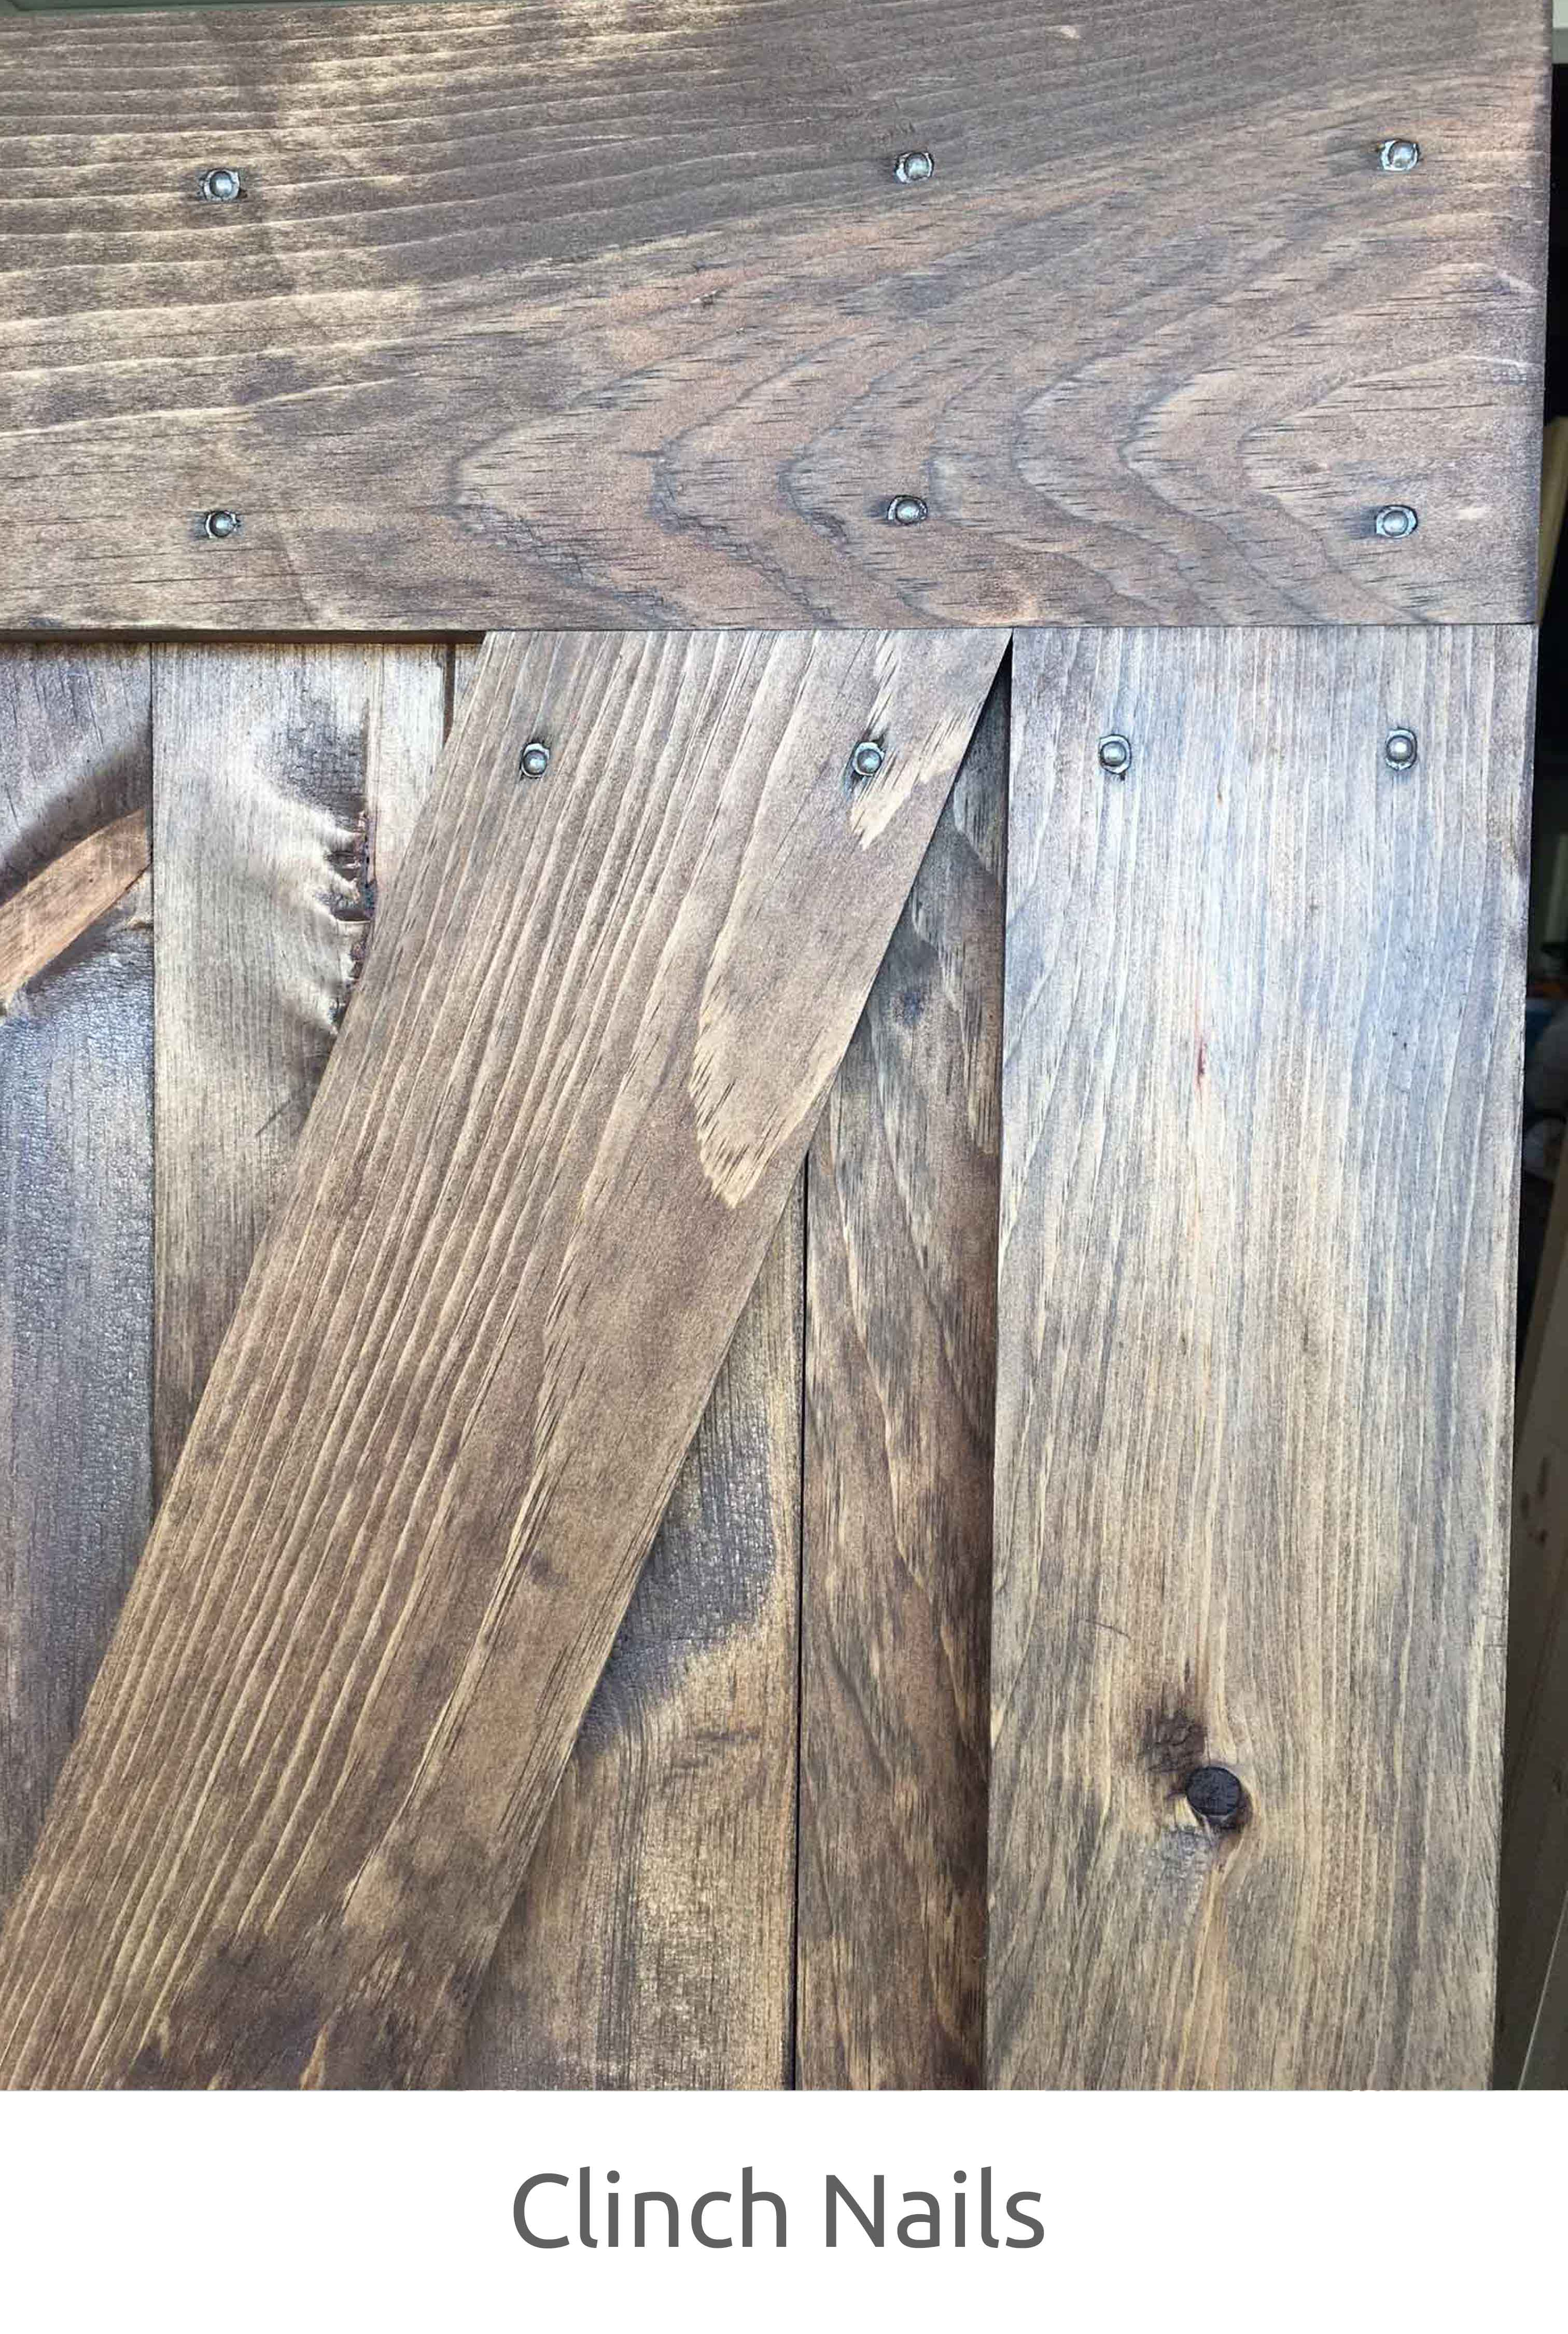 Alternatively we can use brass screws which are drilled in from the back of the door and are not visible from the front (design side) of the door. & Door Construction » RusticRoo Designs